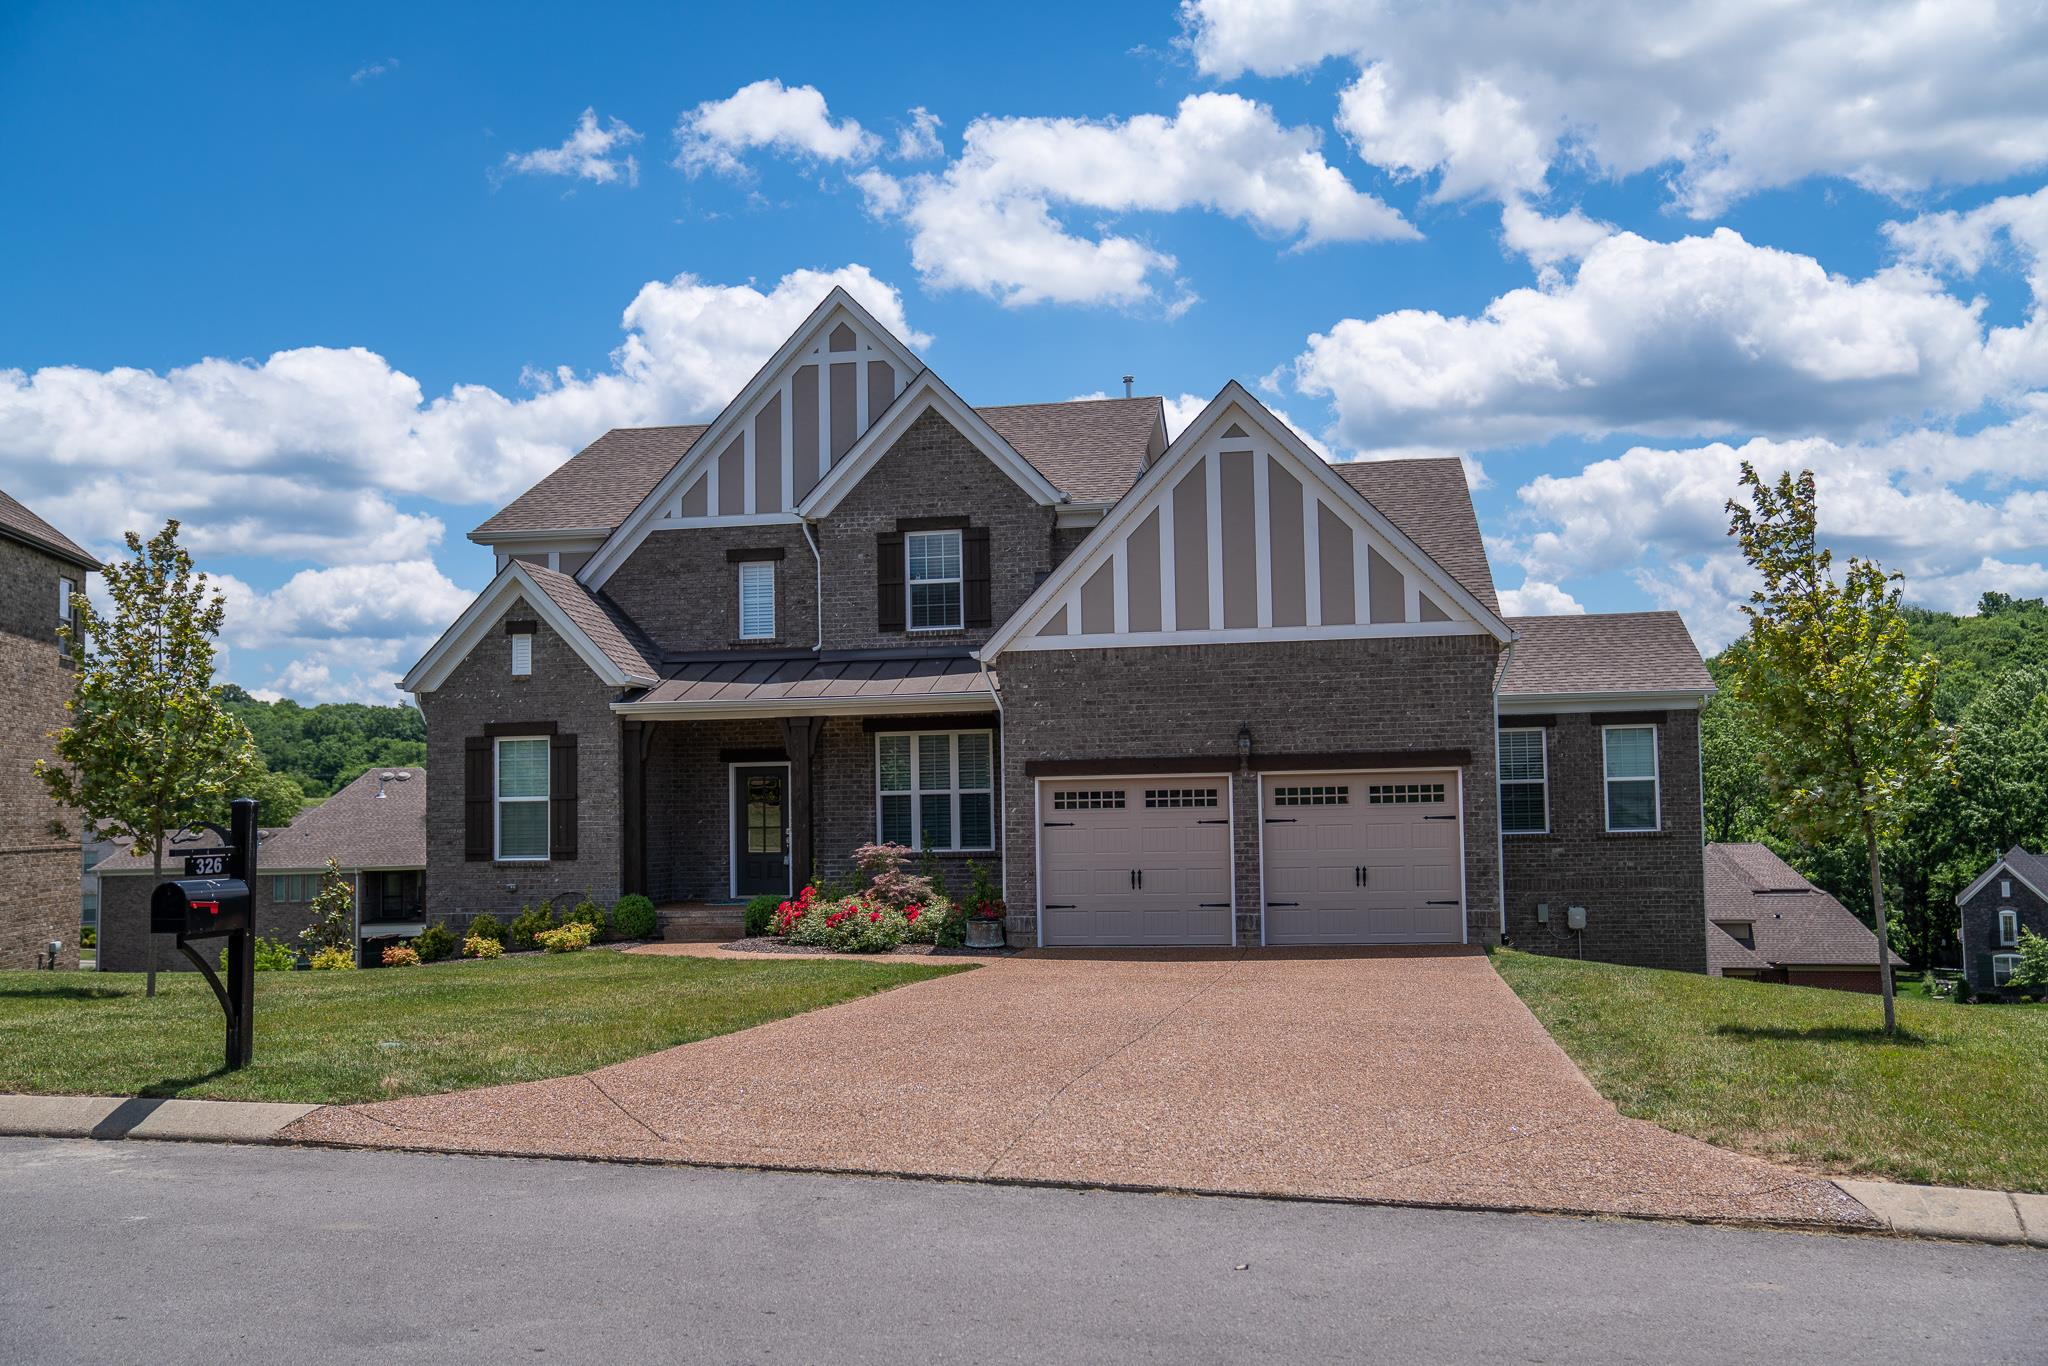 One of Nolensville 5 Bedroom Homes for Sale at 326 Crescent Moon Cir